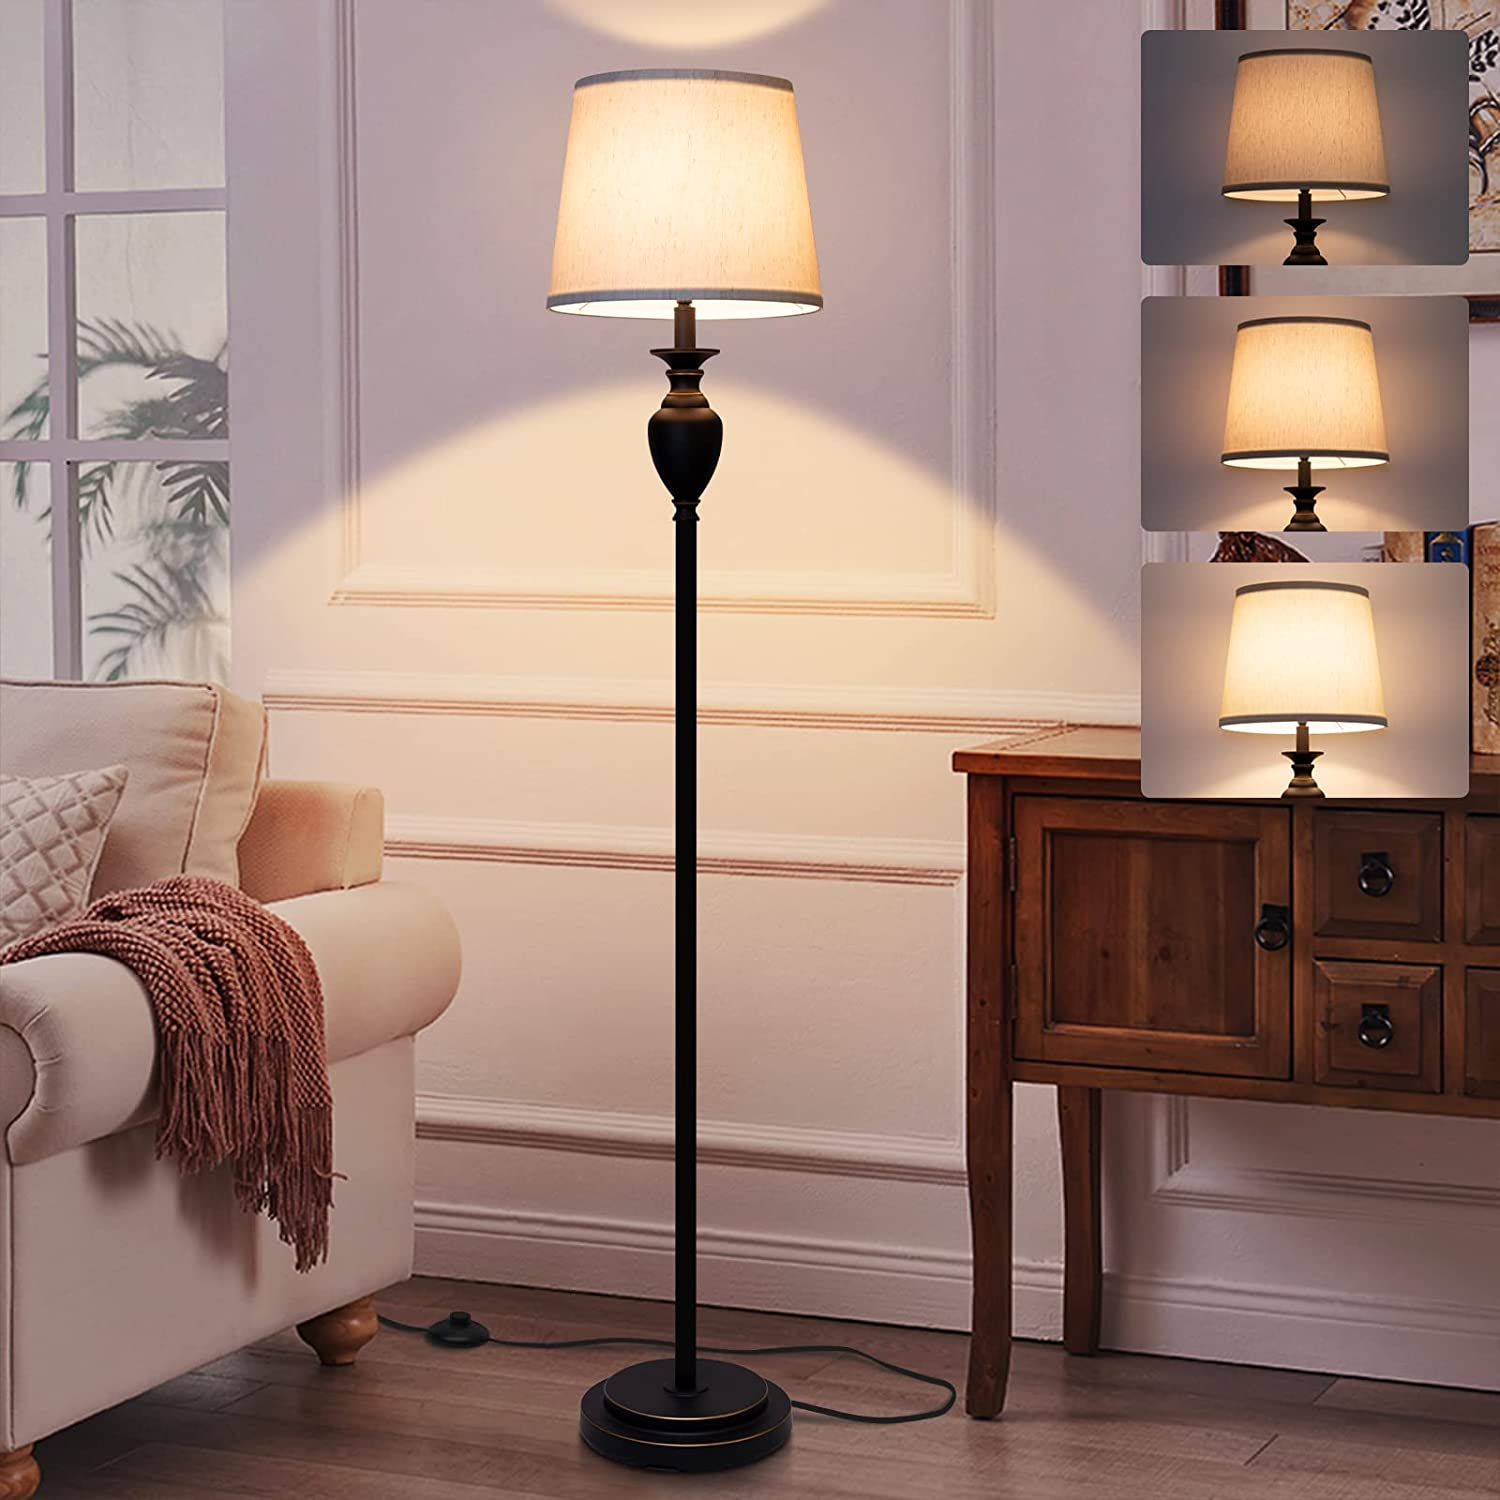 LED Floor Lamp, Fully Dimmable Traditional Floor Lamp with Pedal Switch, Tall Pole Lamp Beige Shade Classic Standing Lamp Black Base Corner Light for Living Room Bedroom Office, 8W LED Bulb Included